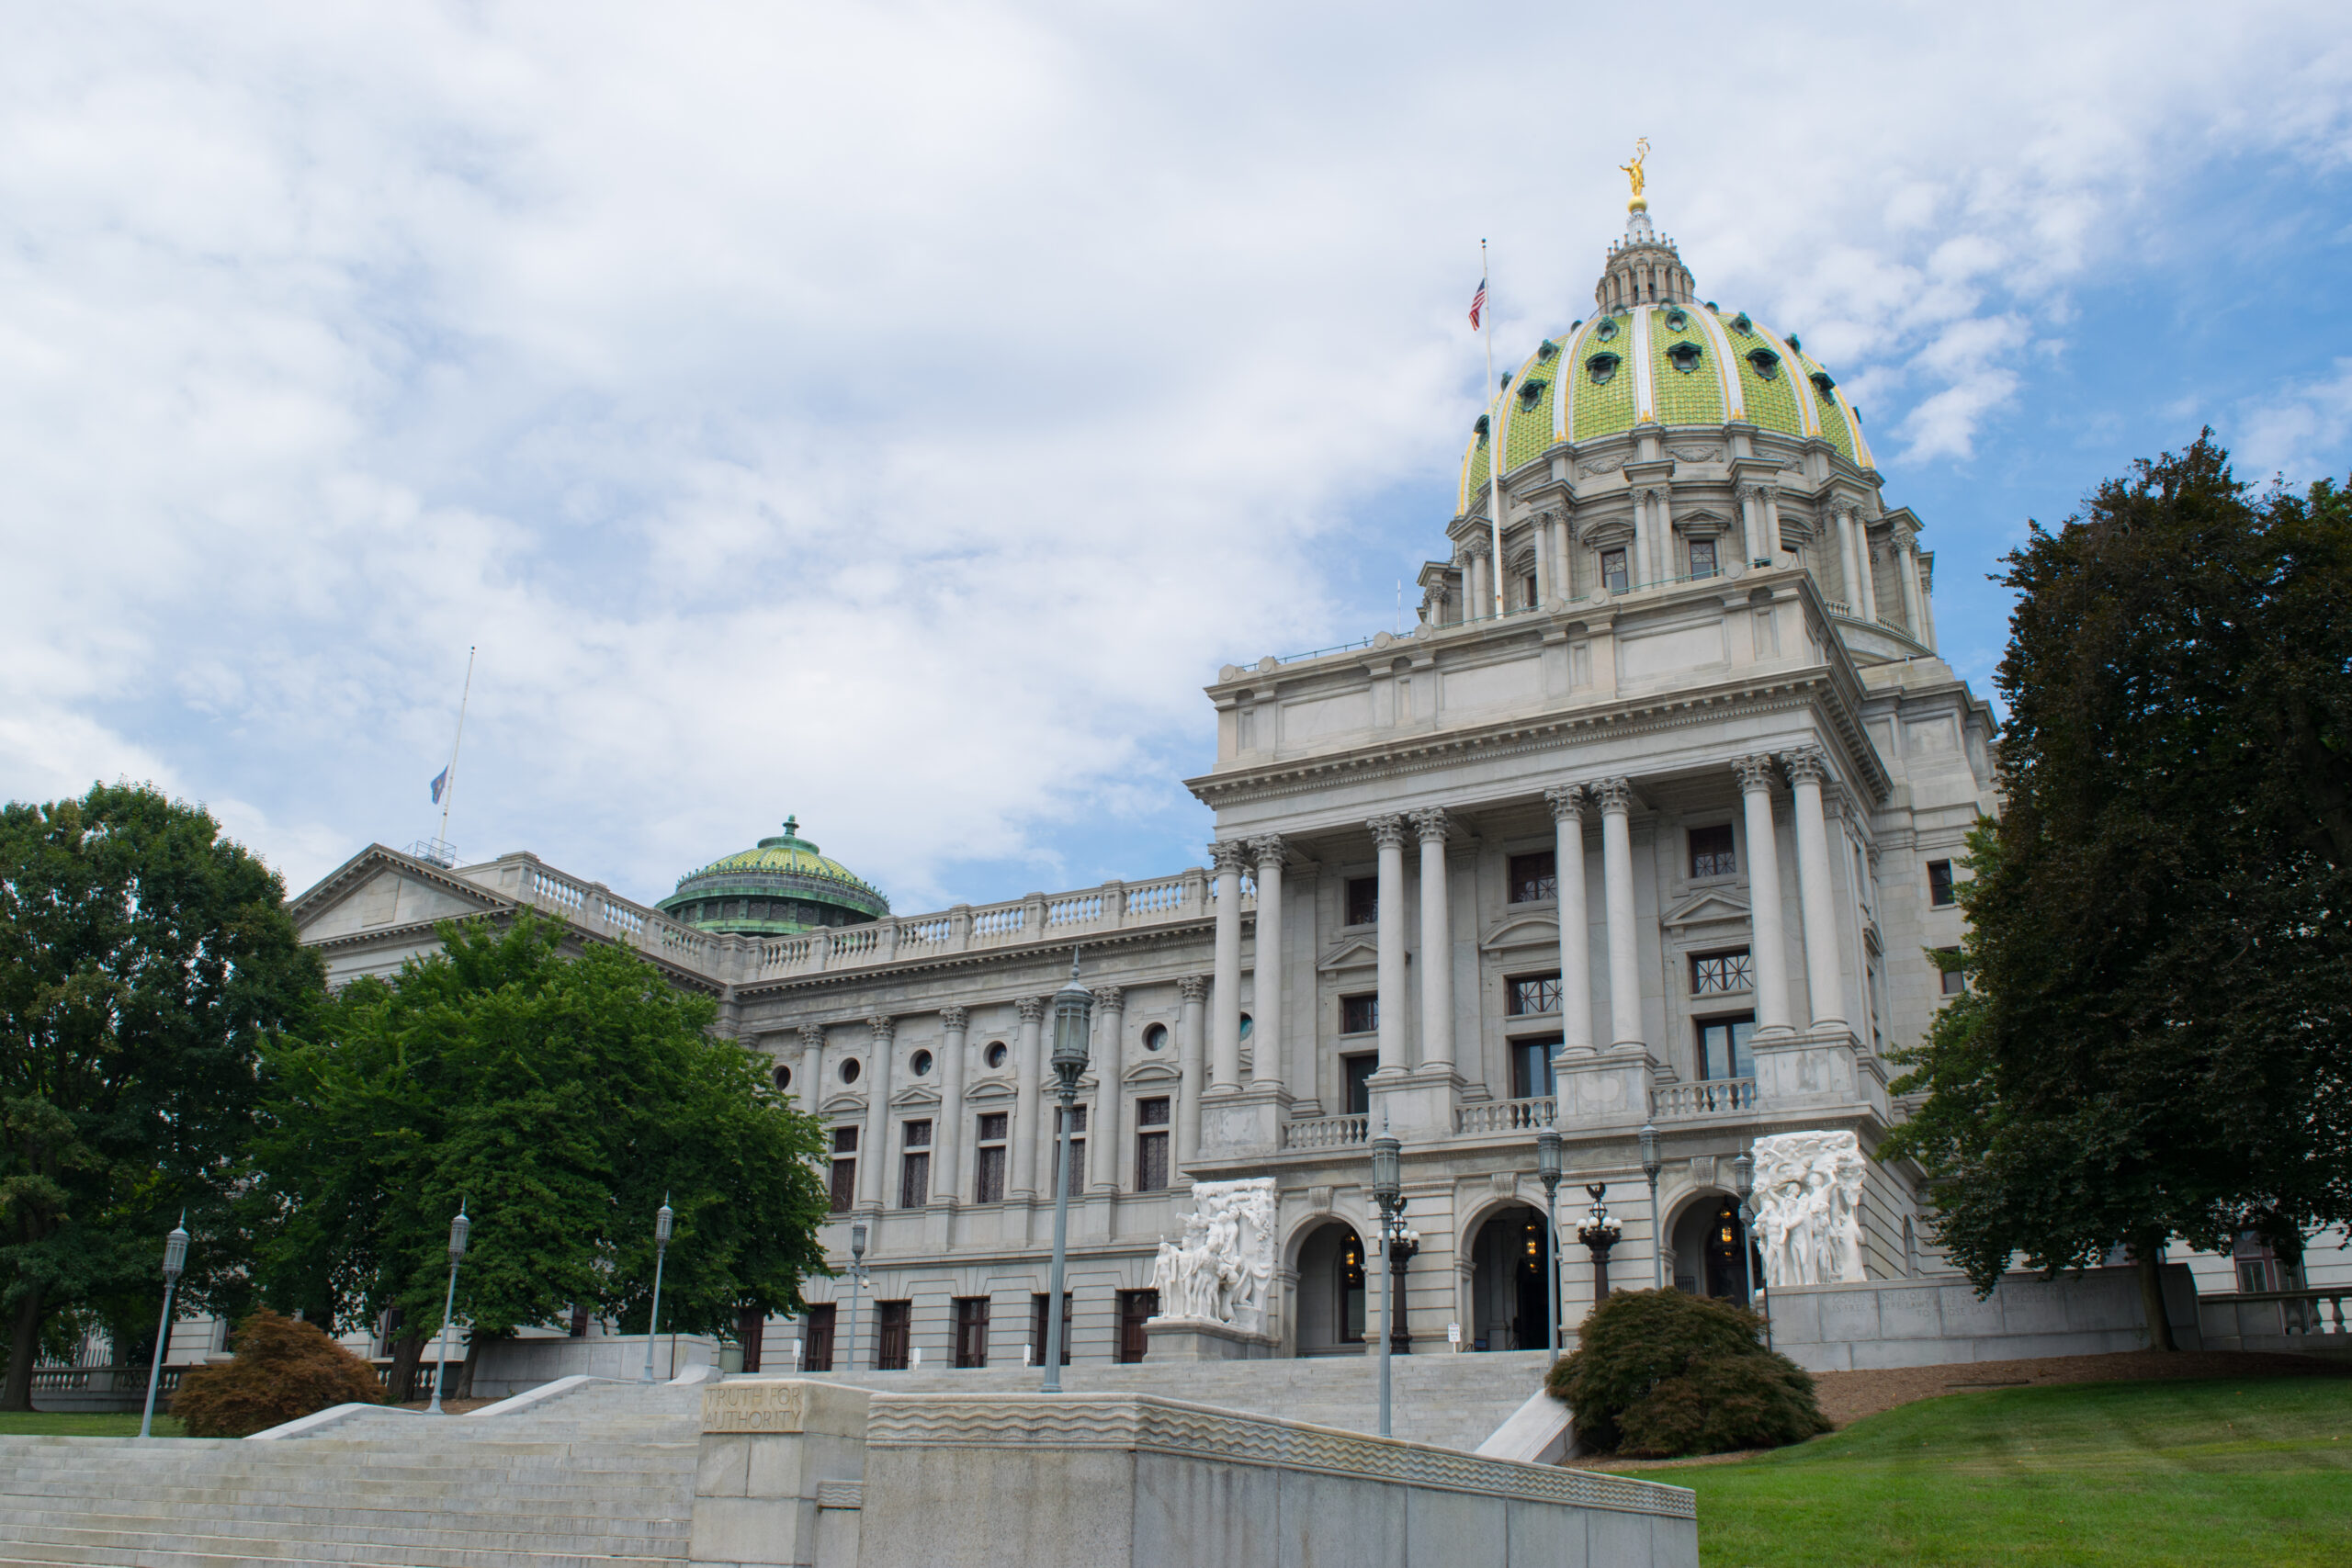 Testimony on pension garnishment and forfeiture, and future pension policy considerations for Pennsylvania